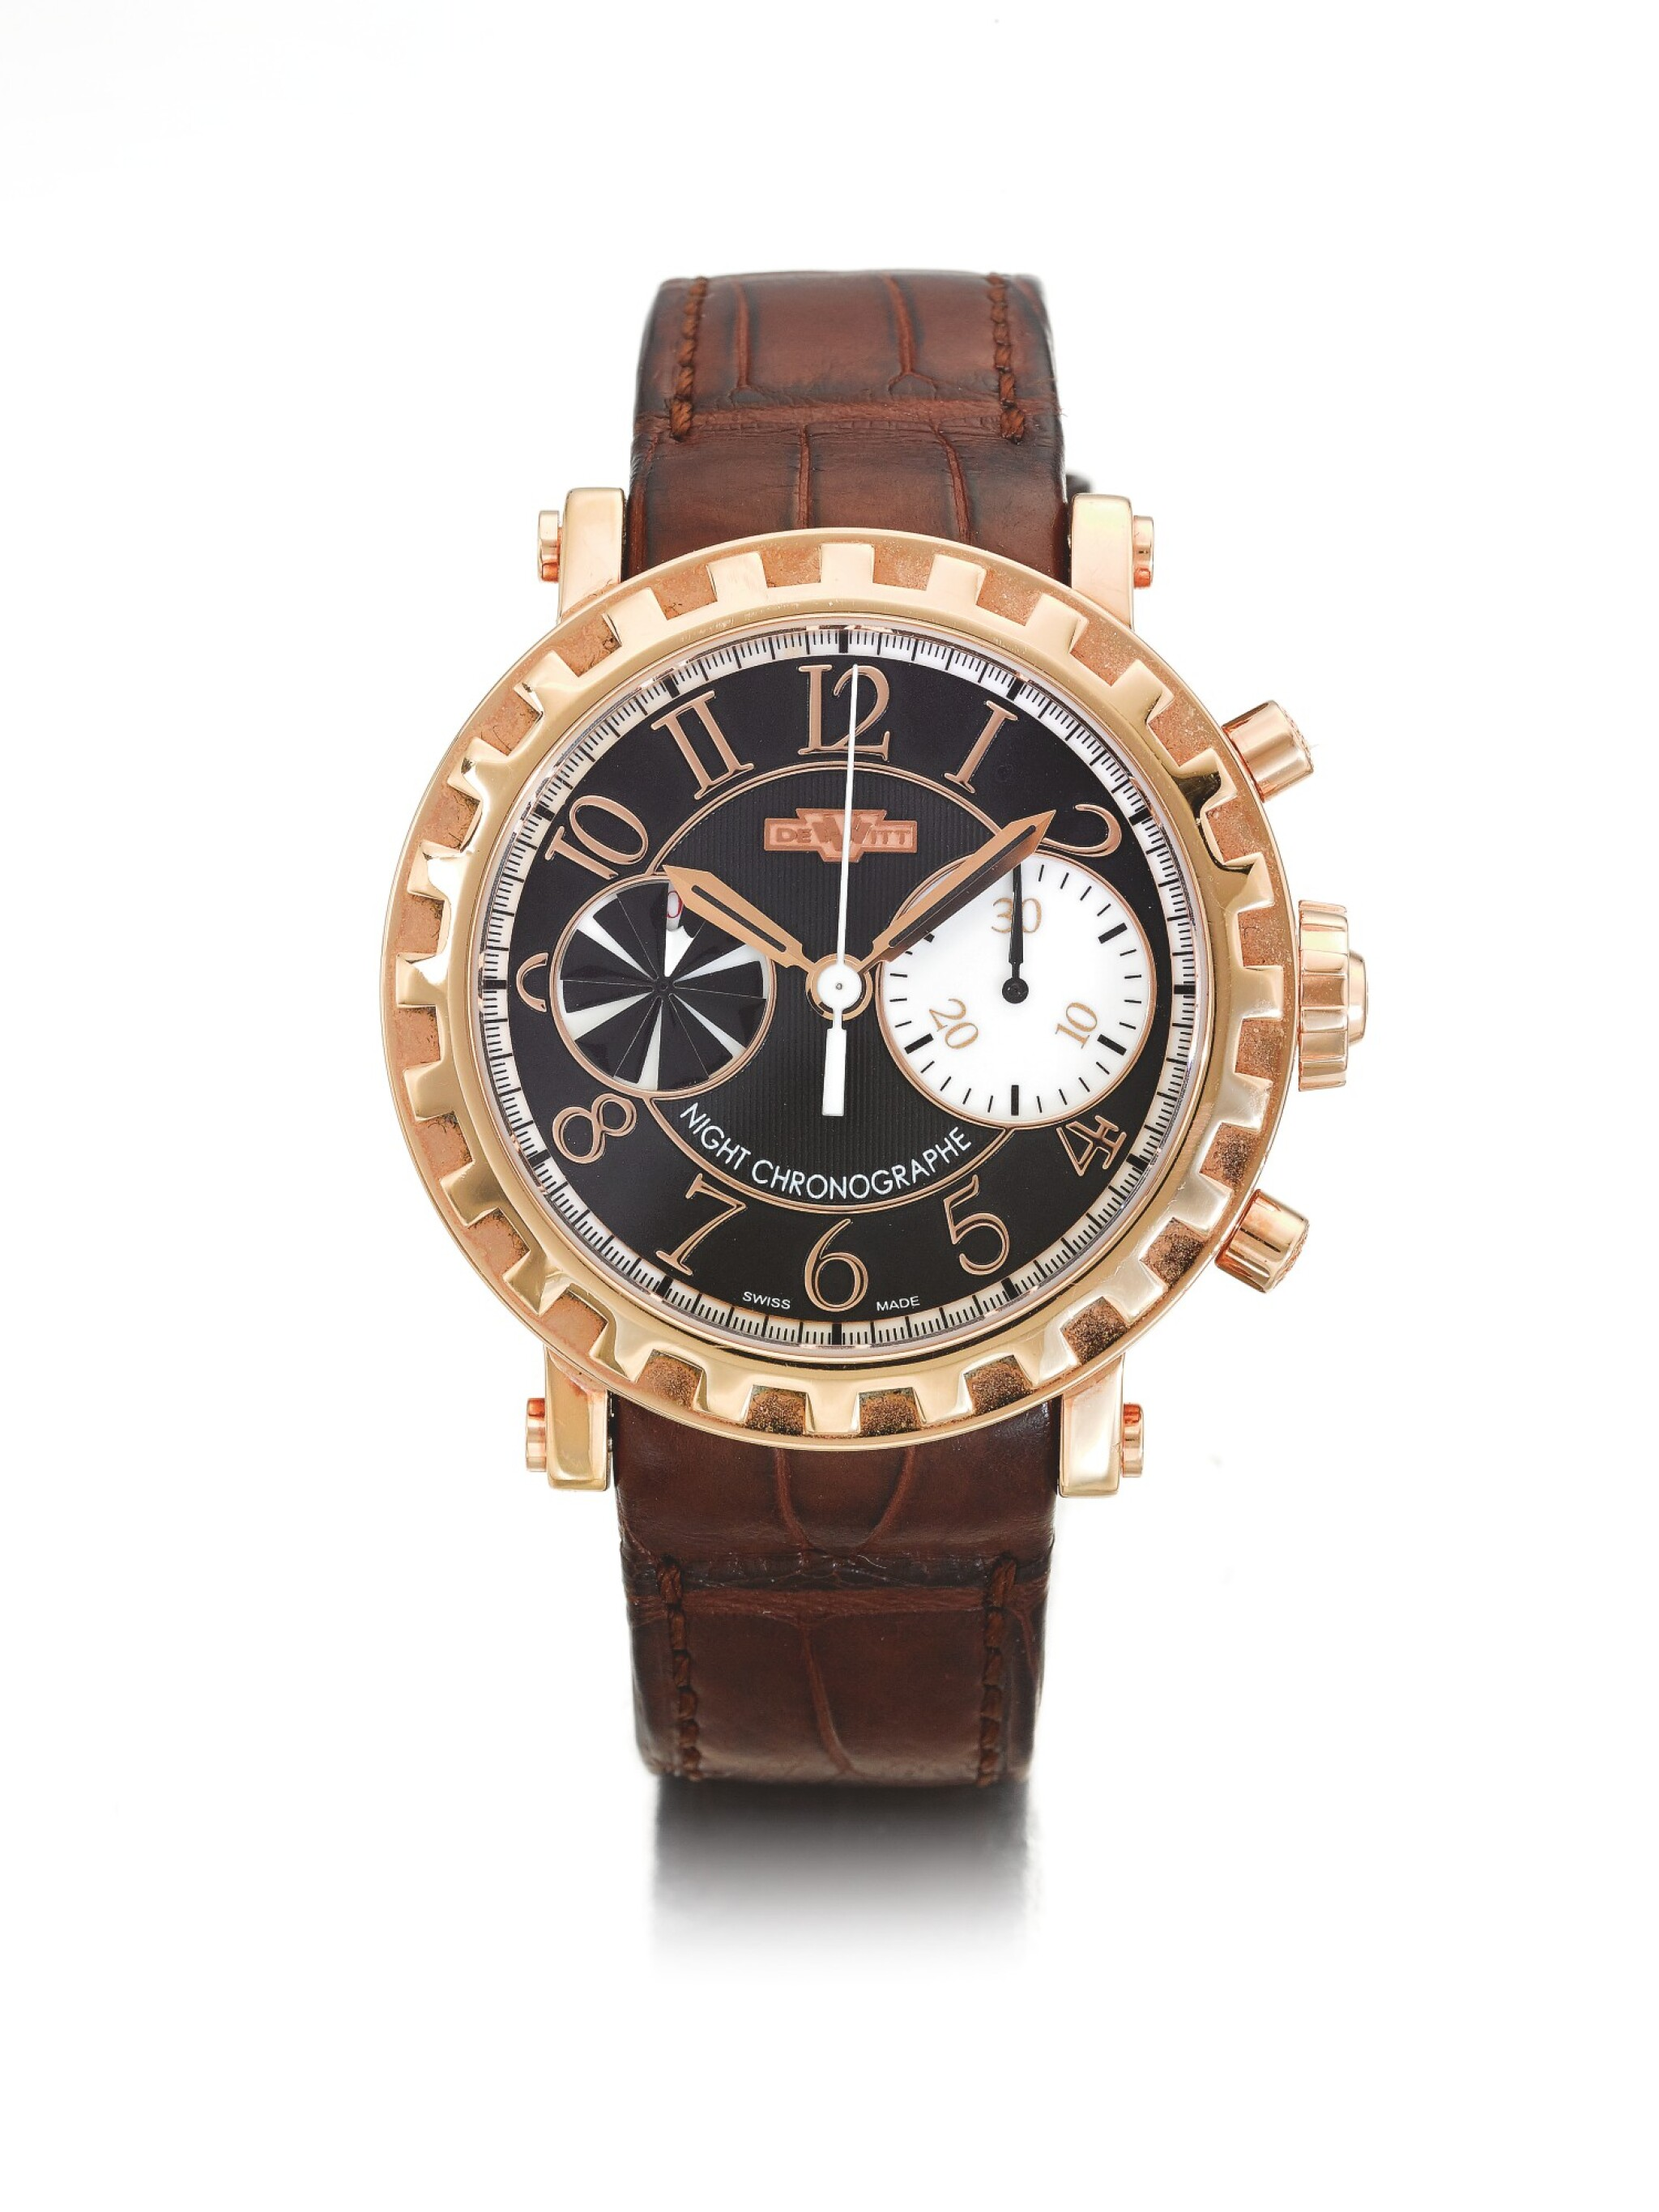 DEWITT | REF 6005.53 NIGHT CHRONOGRAPHE, A LIMITED EDITION PINK GOLD AUTOMATIC CHRONOGRAPH WRISTWATCH CIRCA 2005